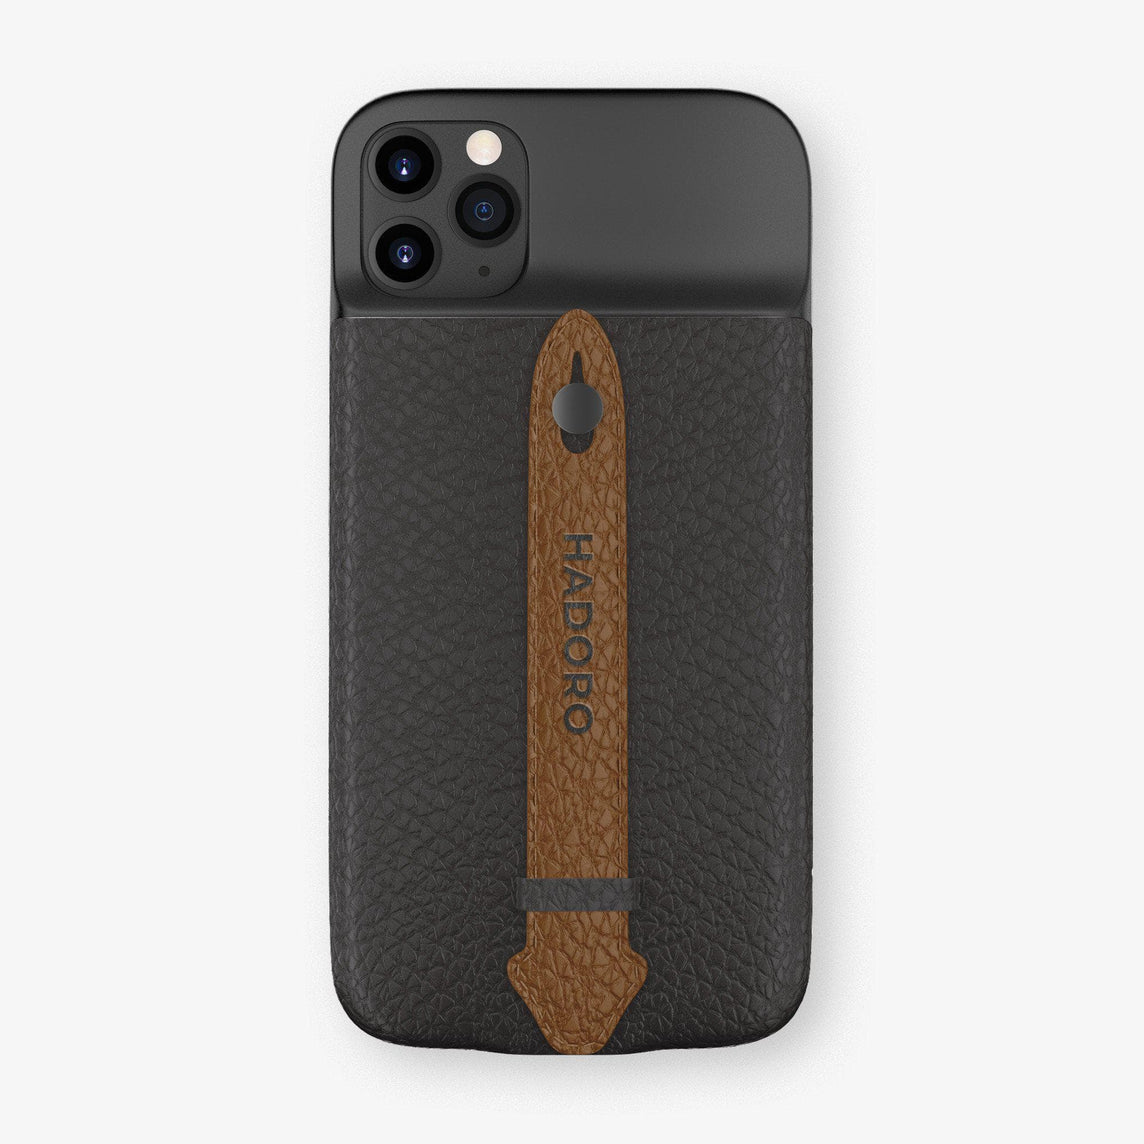 Calfskin Battery Finger Case for iPhone 11 Pro Max | Anthracite/Brown - Black without-personalization